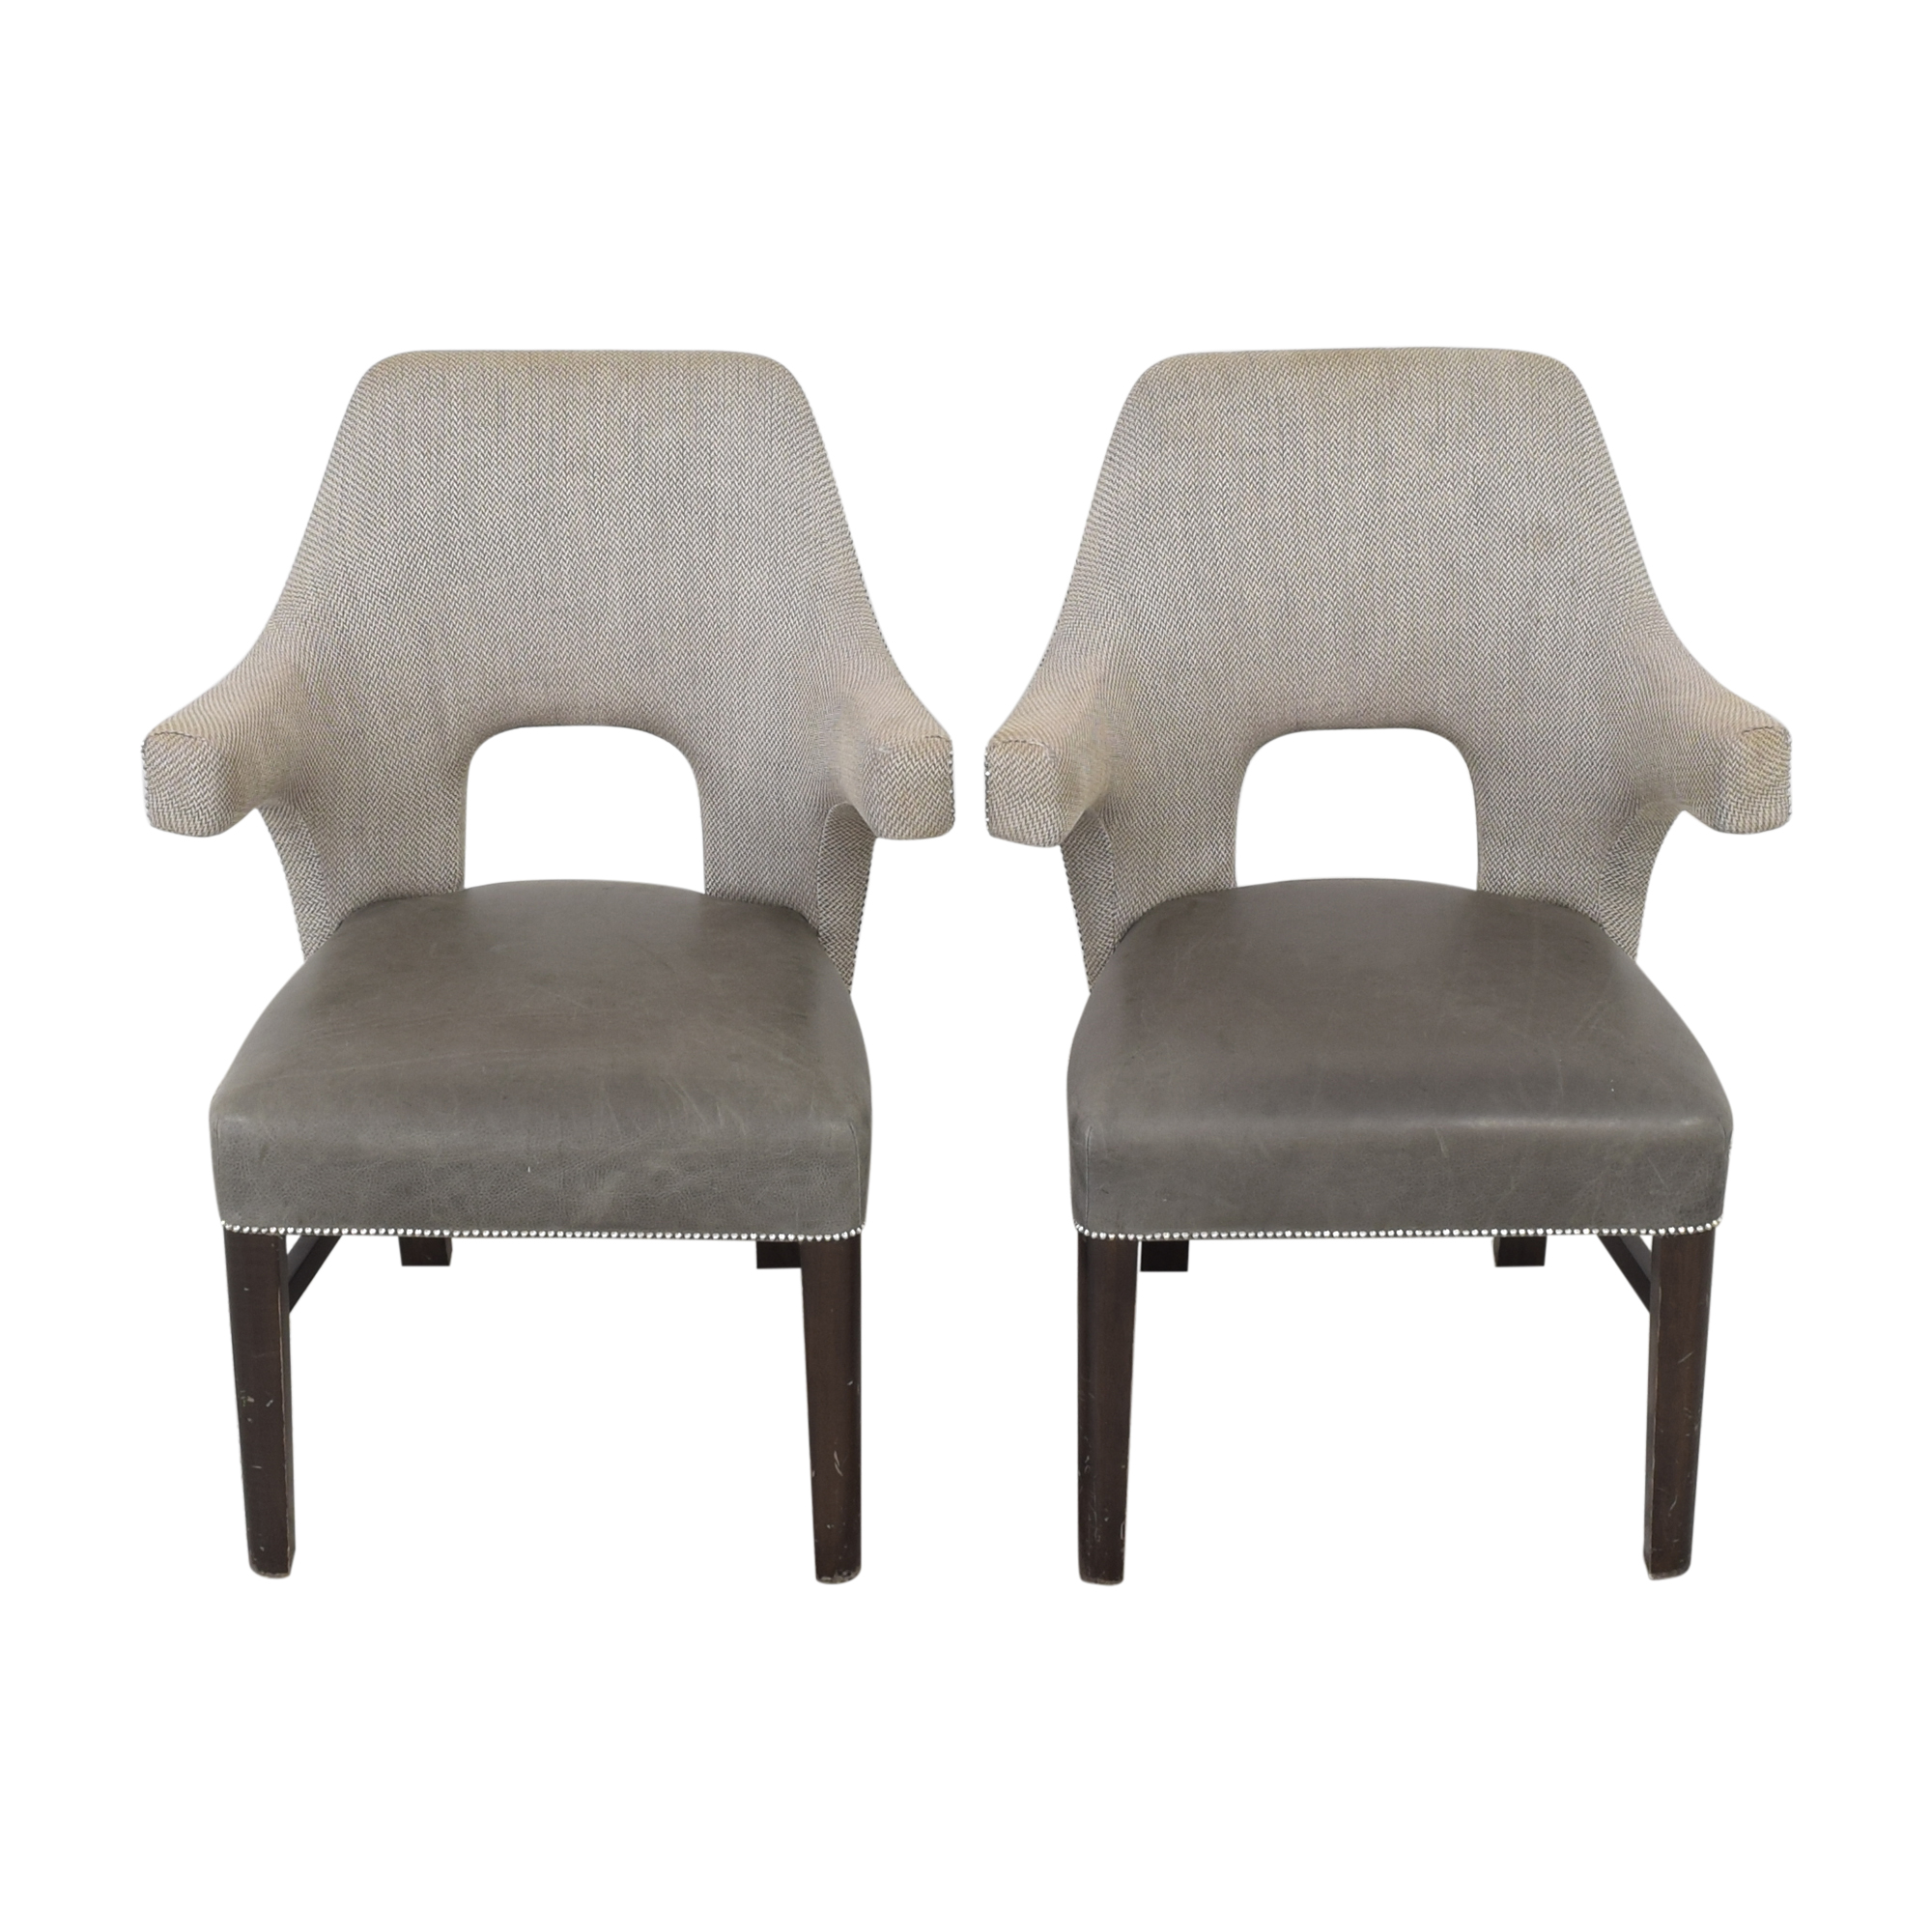 Thom Filicia Thom Filicia Modern Dining Chairs on sale